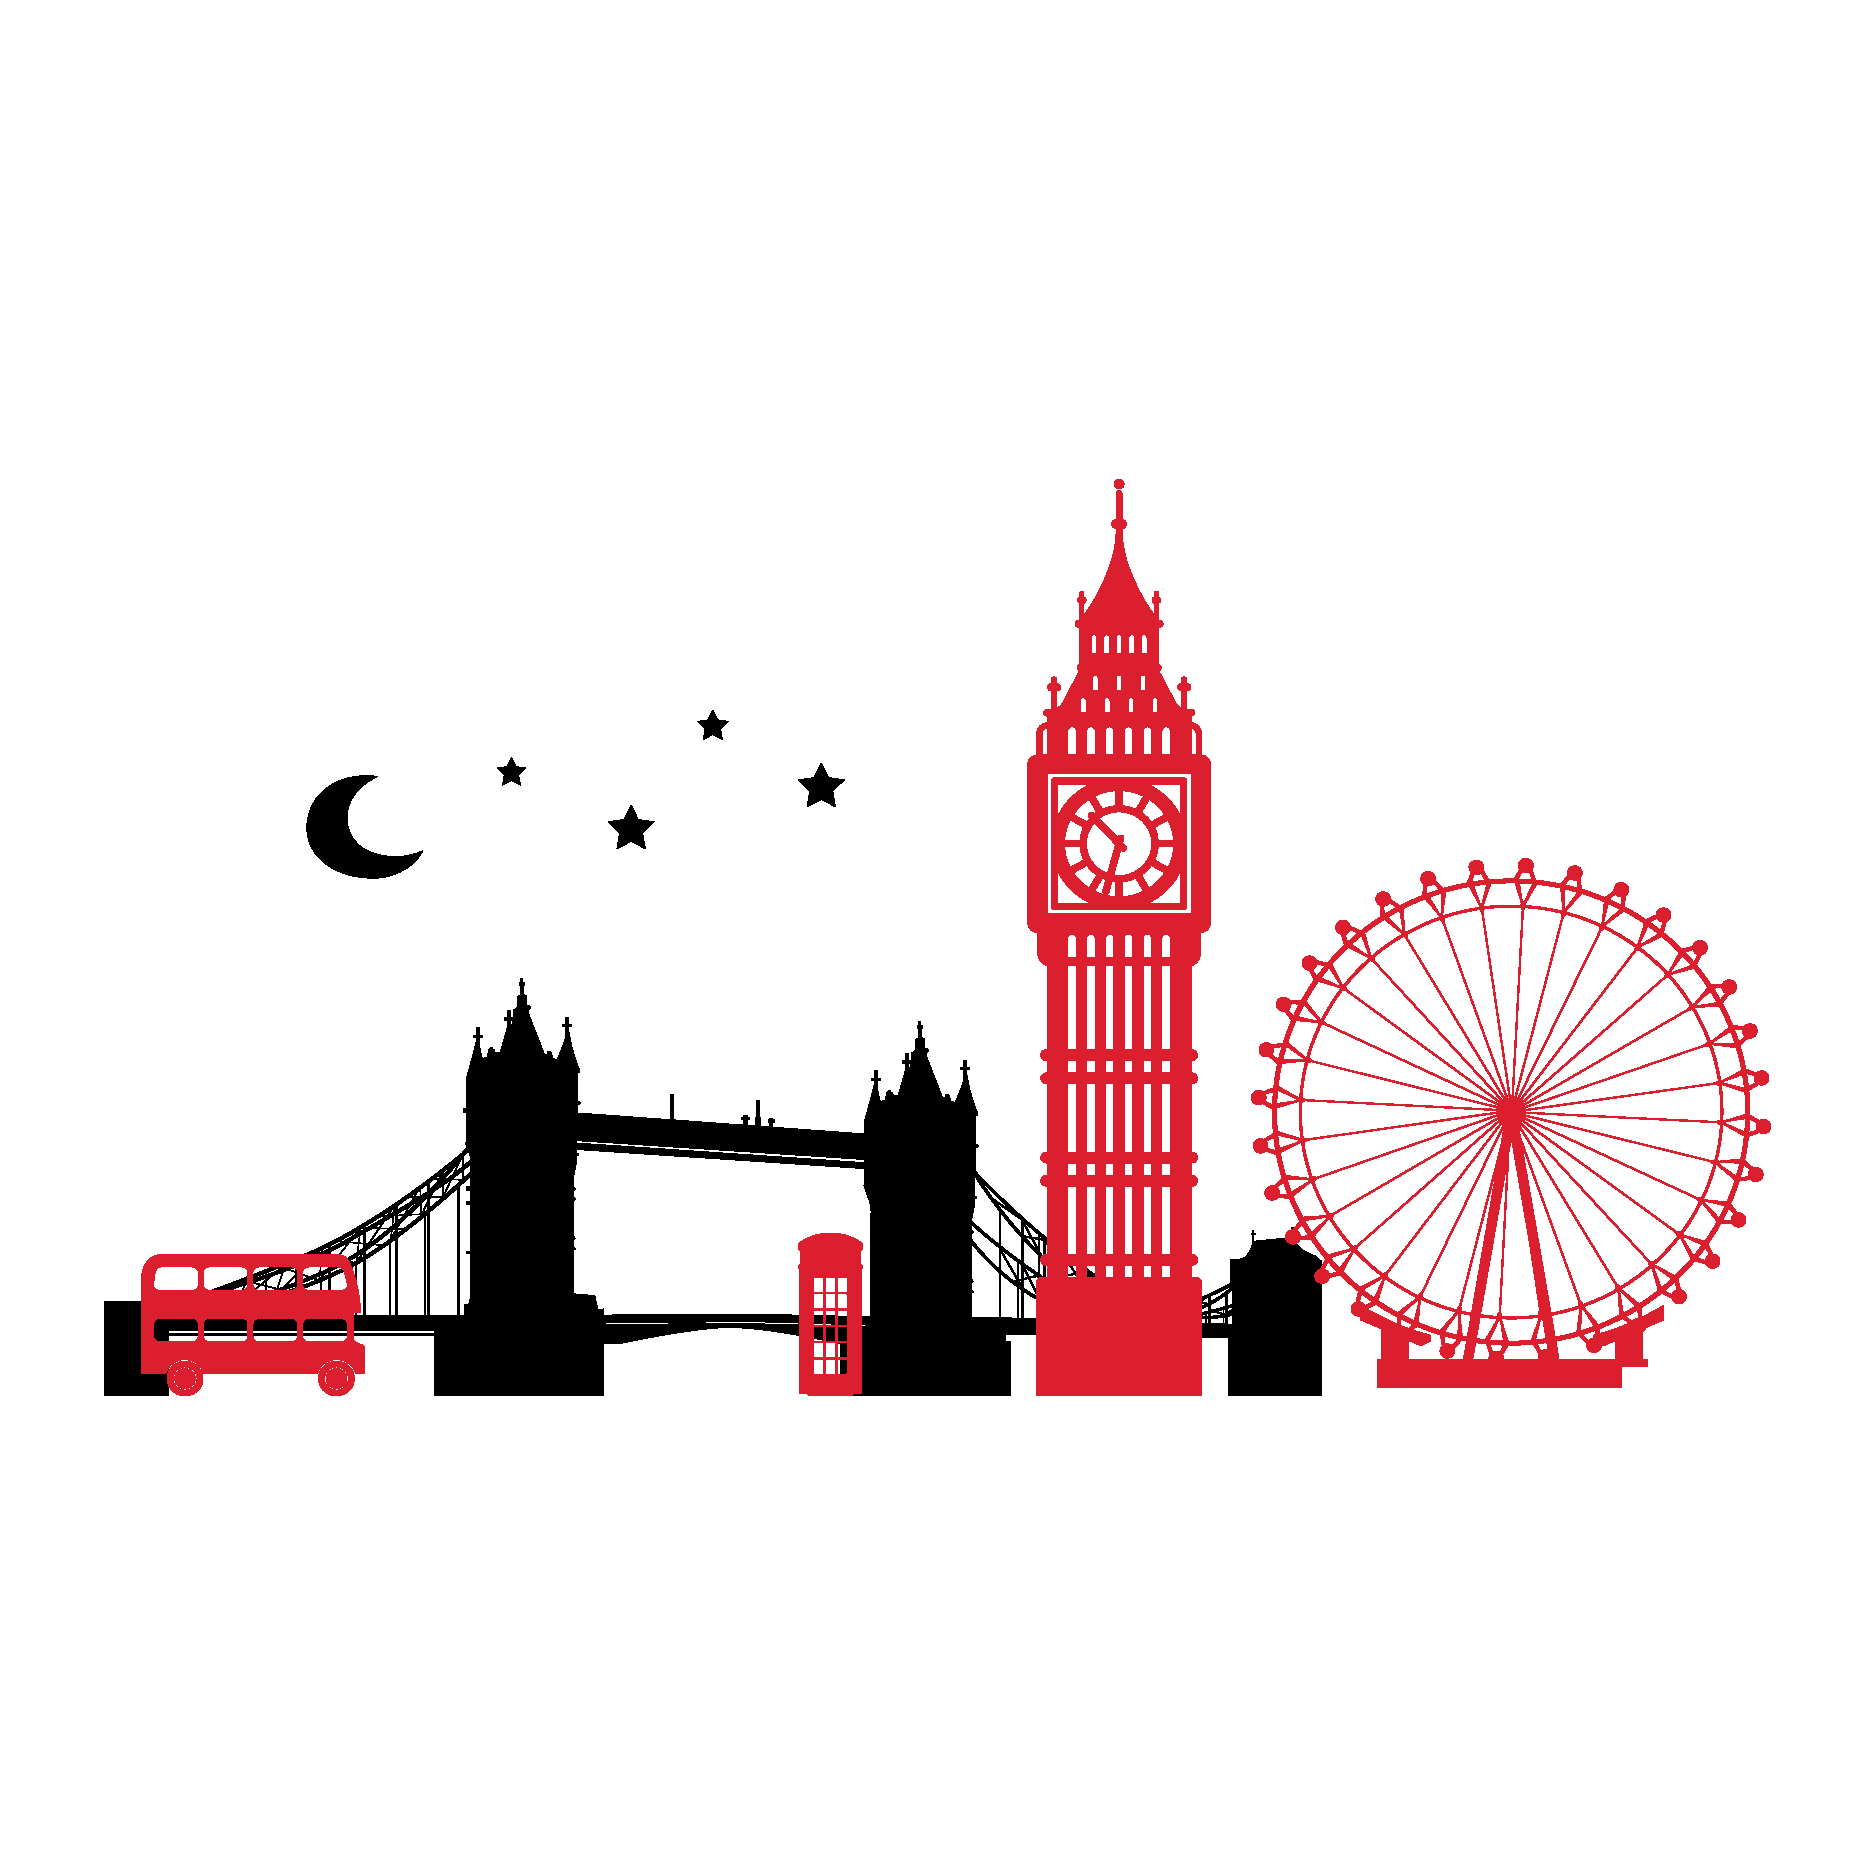 Tower of london clipart with translucent background picture transparent Big Ben Tower of London Tower Bridge Skyline Clip art ... picture transparent